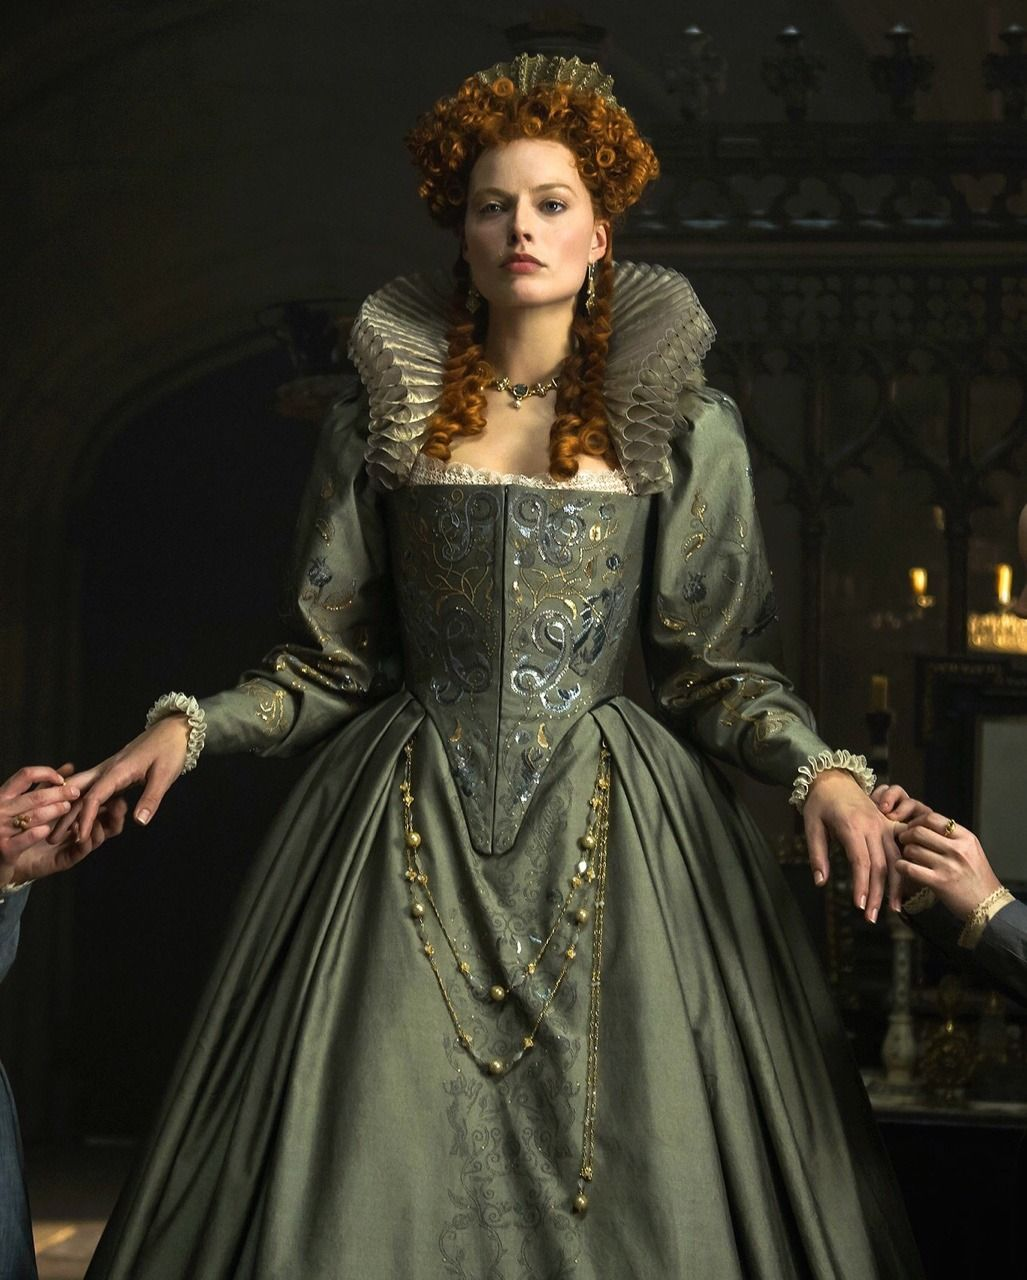 Queen Elizabeth I Margot Robbie in 'Mary Queen of Scots